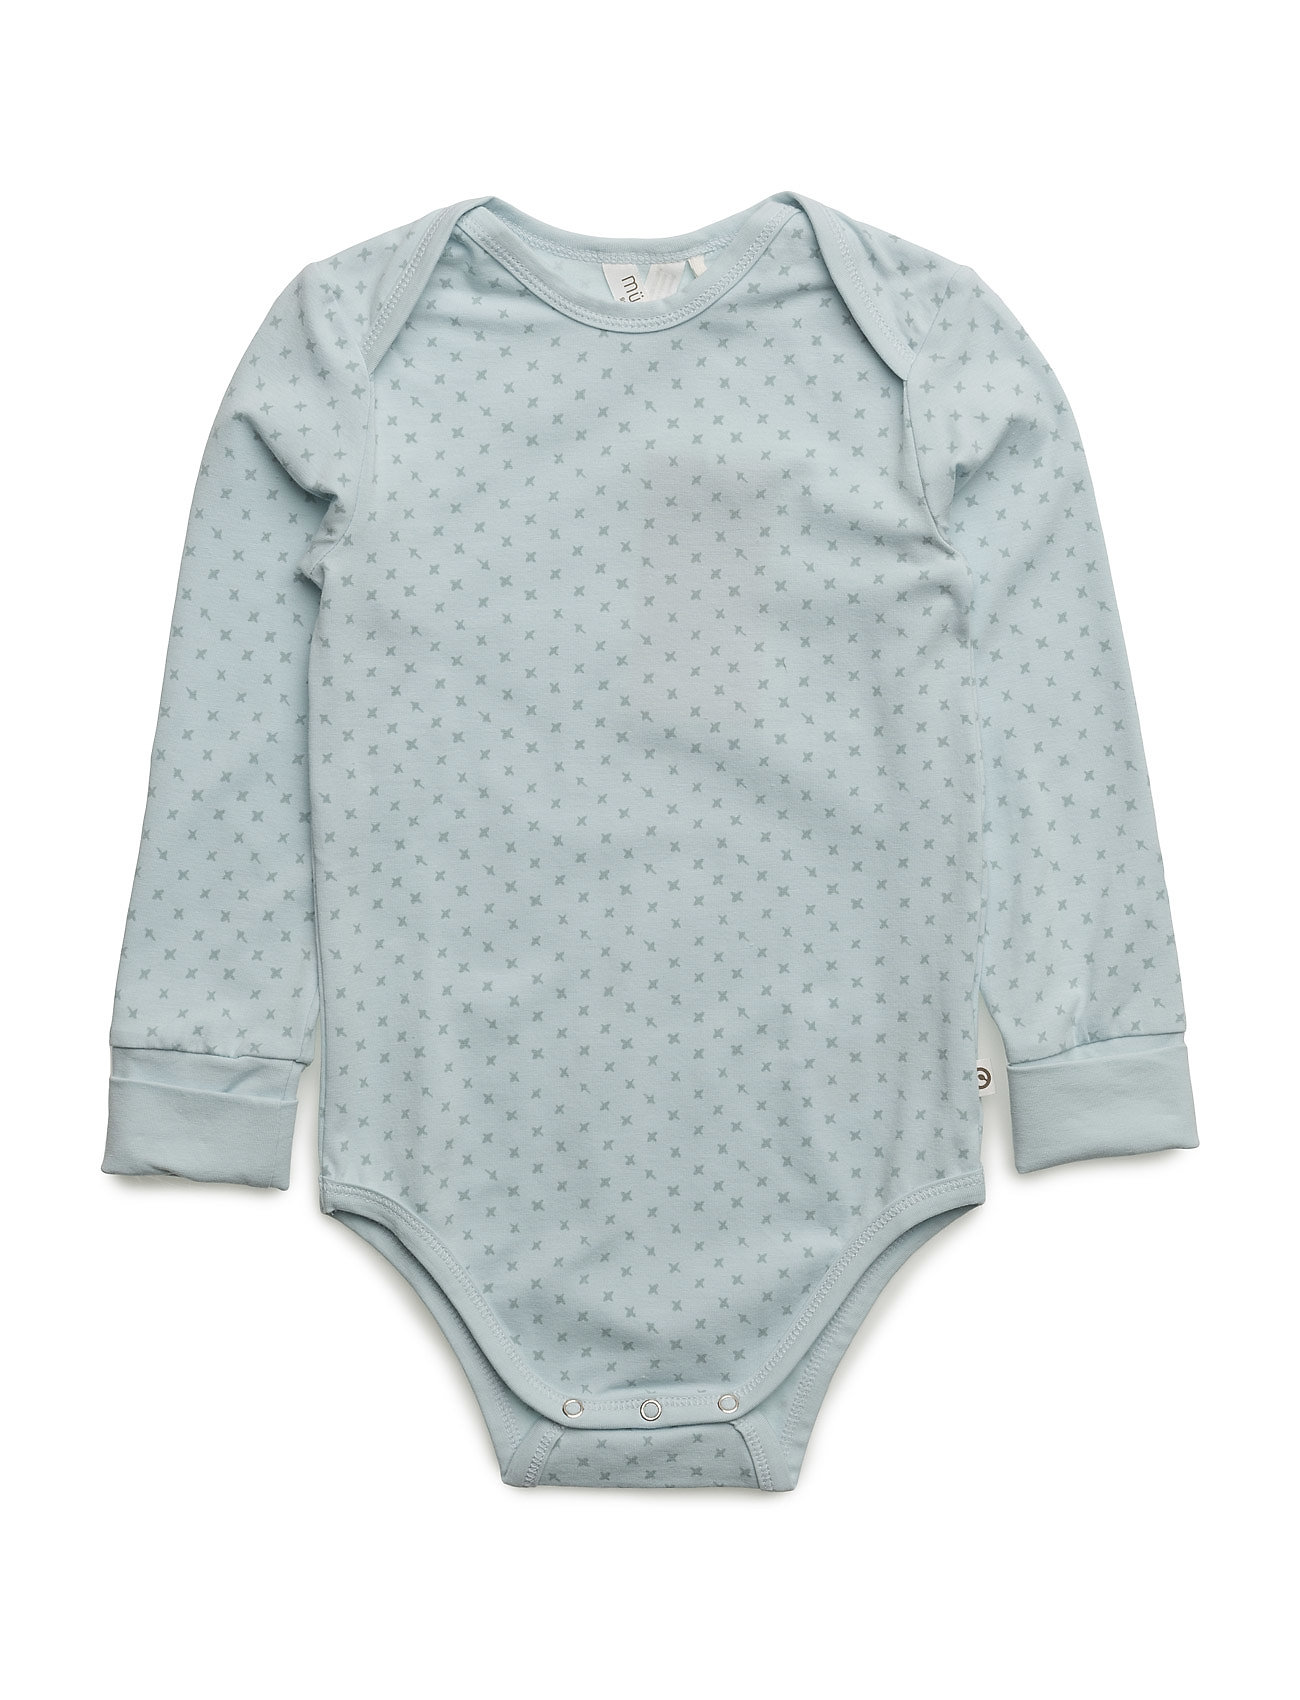 Cross L/Sl Body Müsli by Green Cotton Langærmede bodies til Børn i